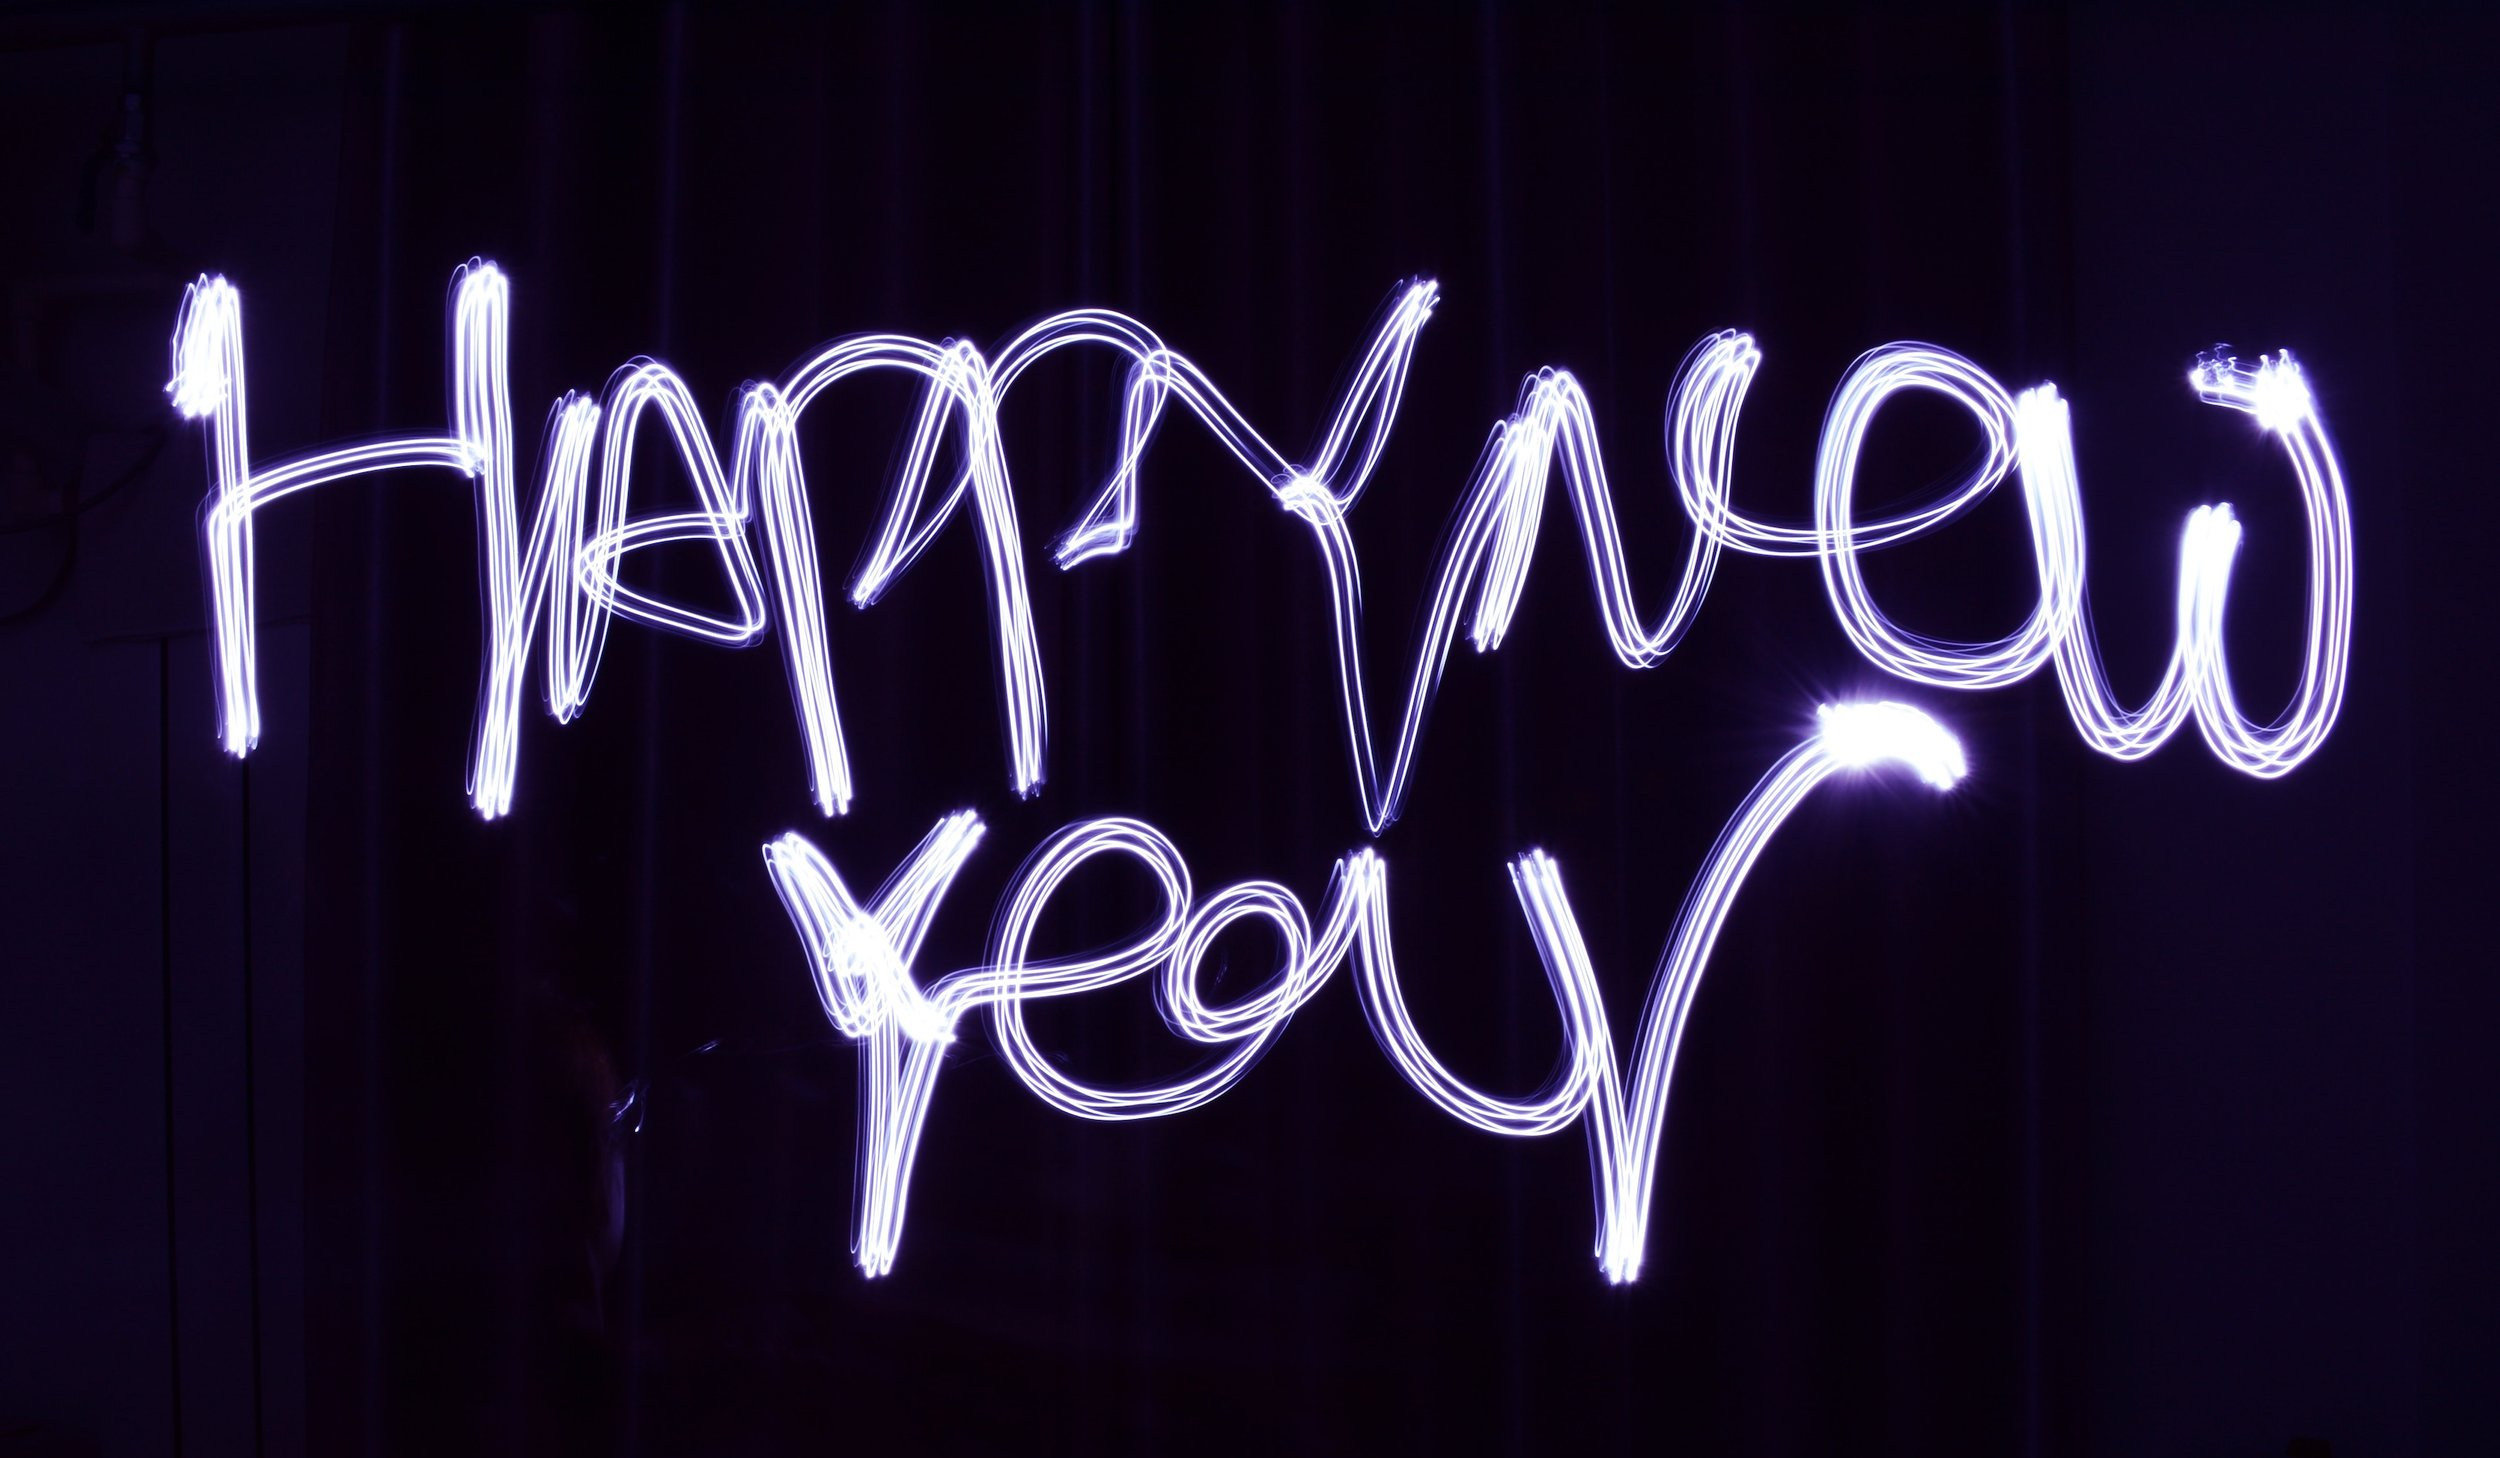 [Image description: 'Happy New Year' written in bright lights against a black background.]